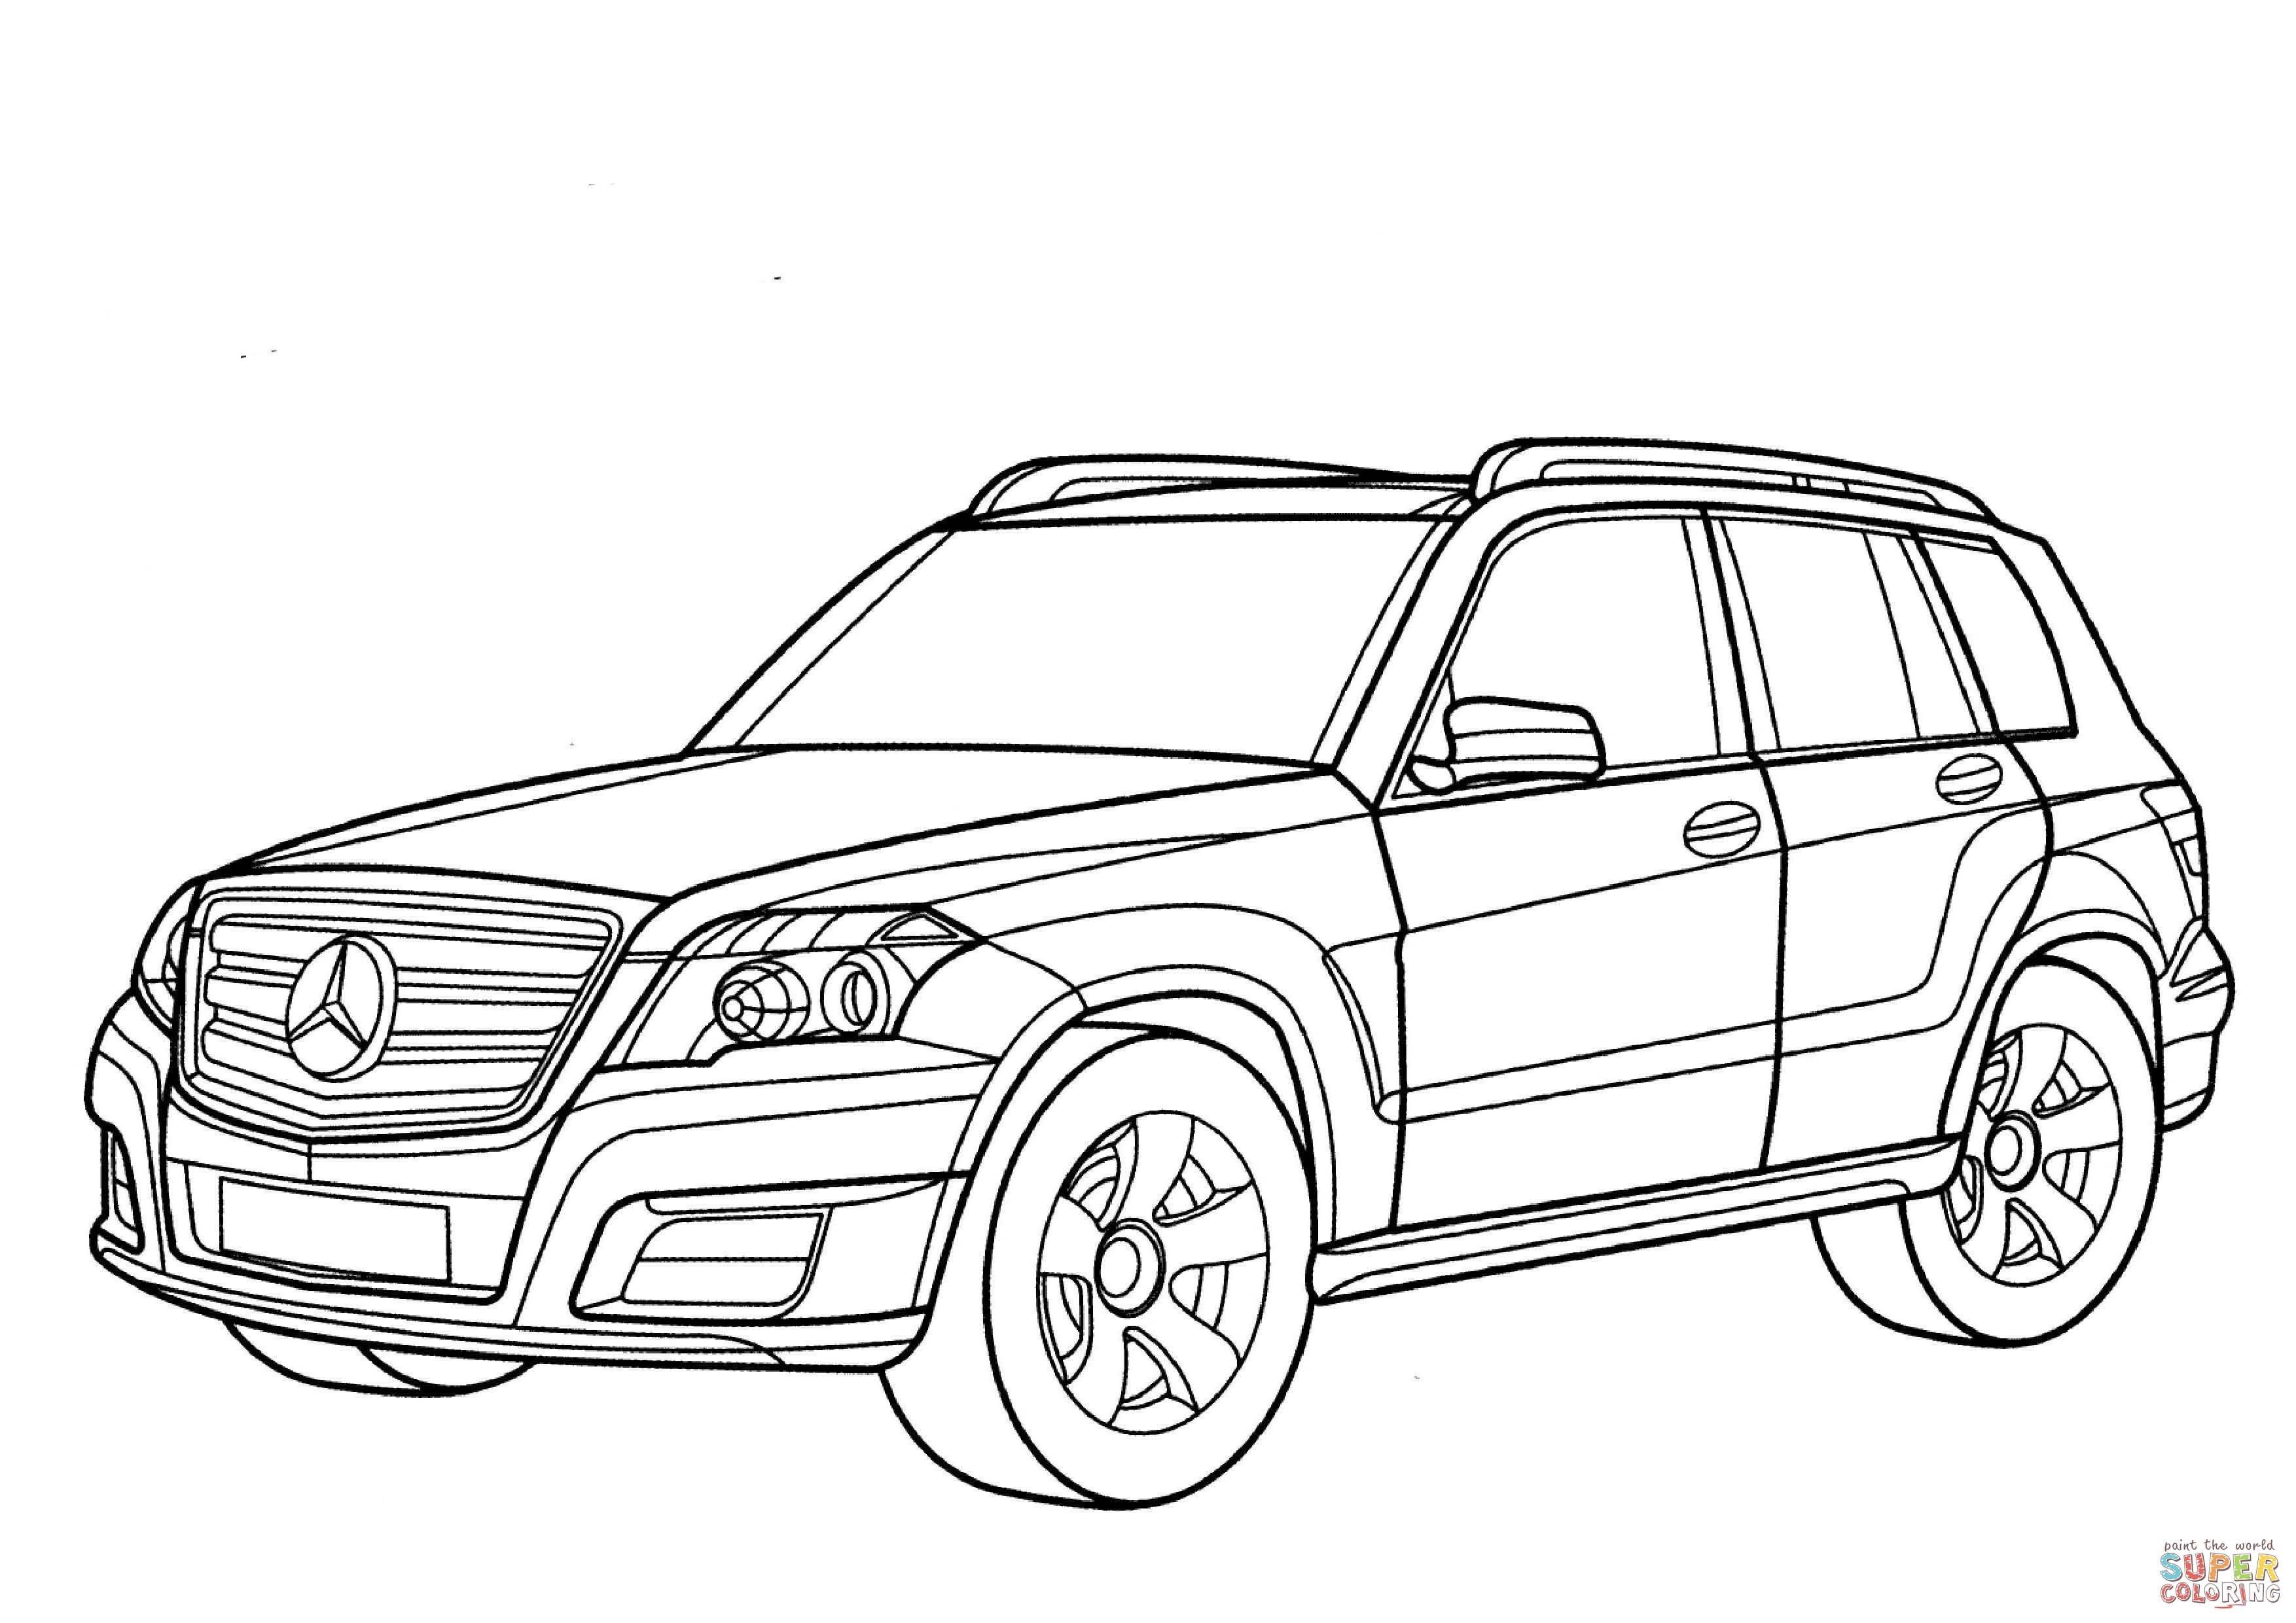 Suv Drawing At Getdrawings